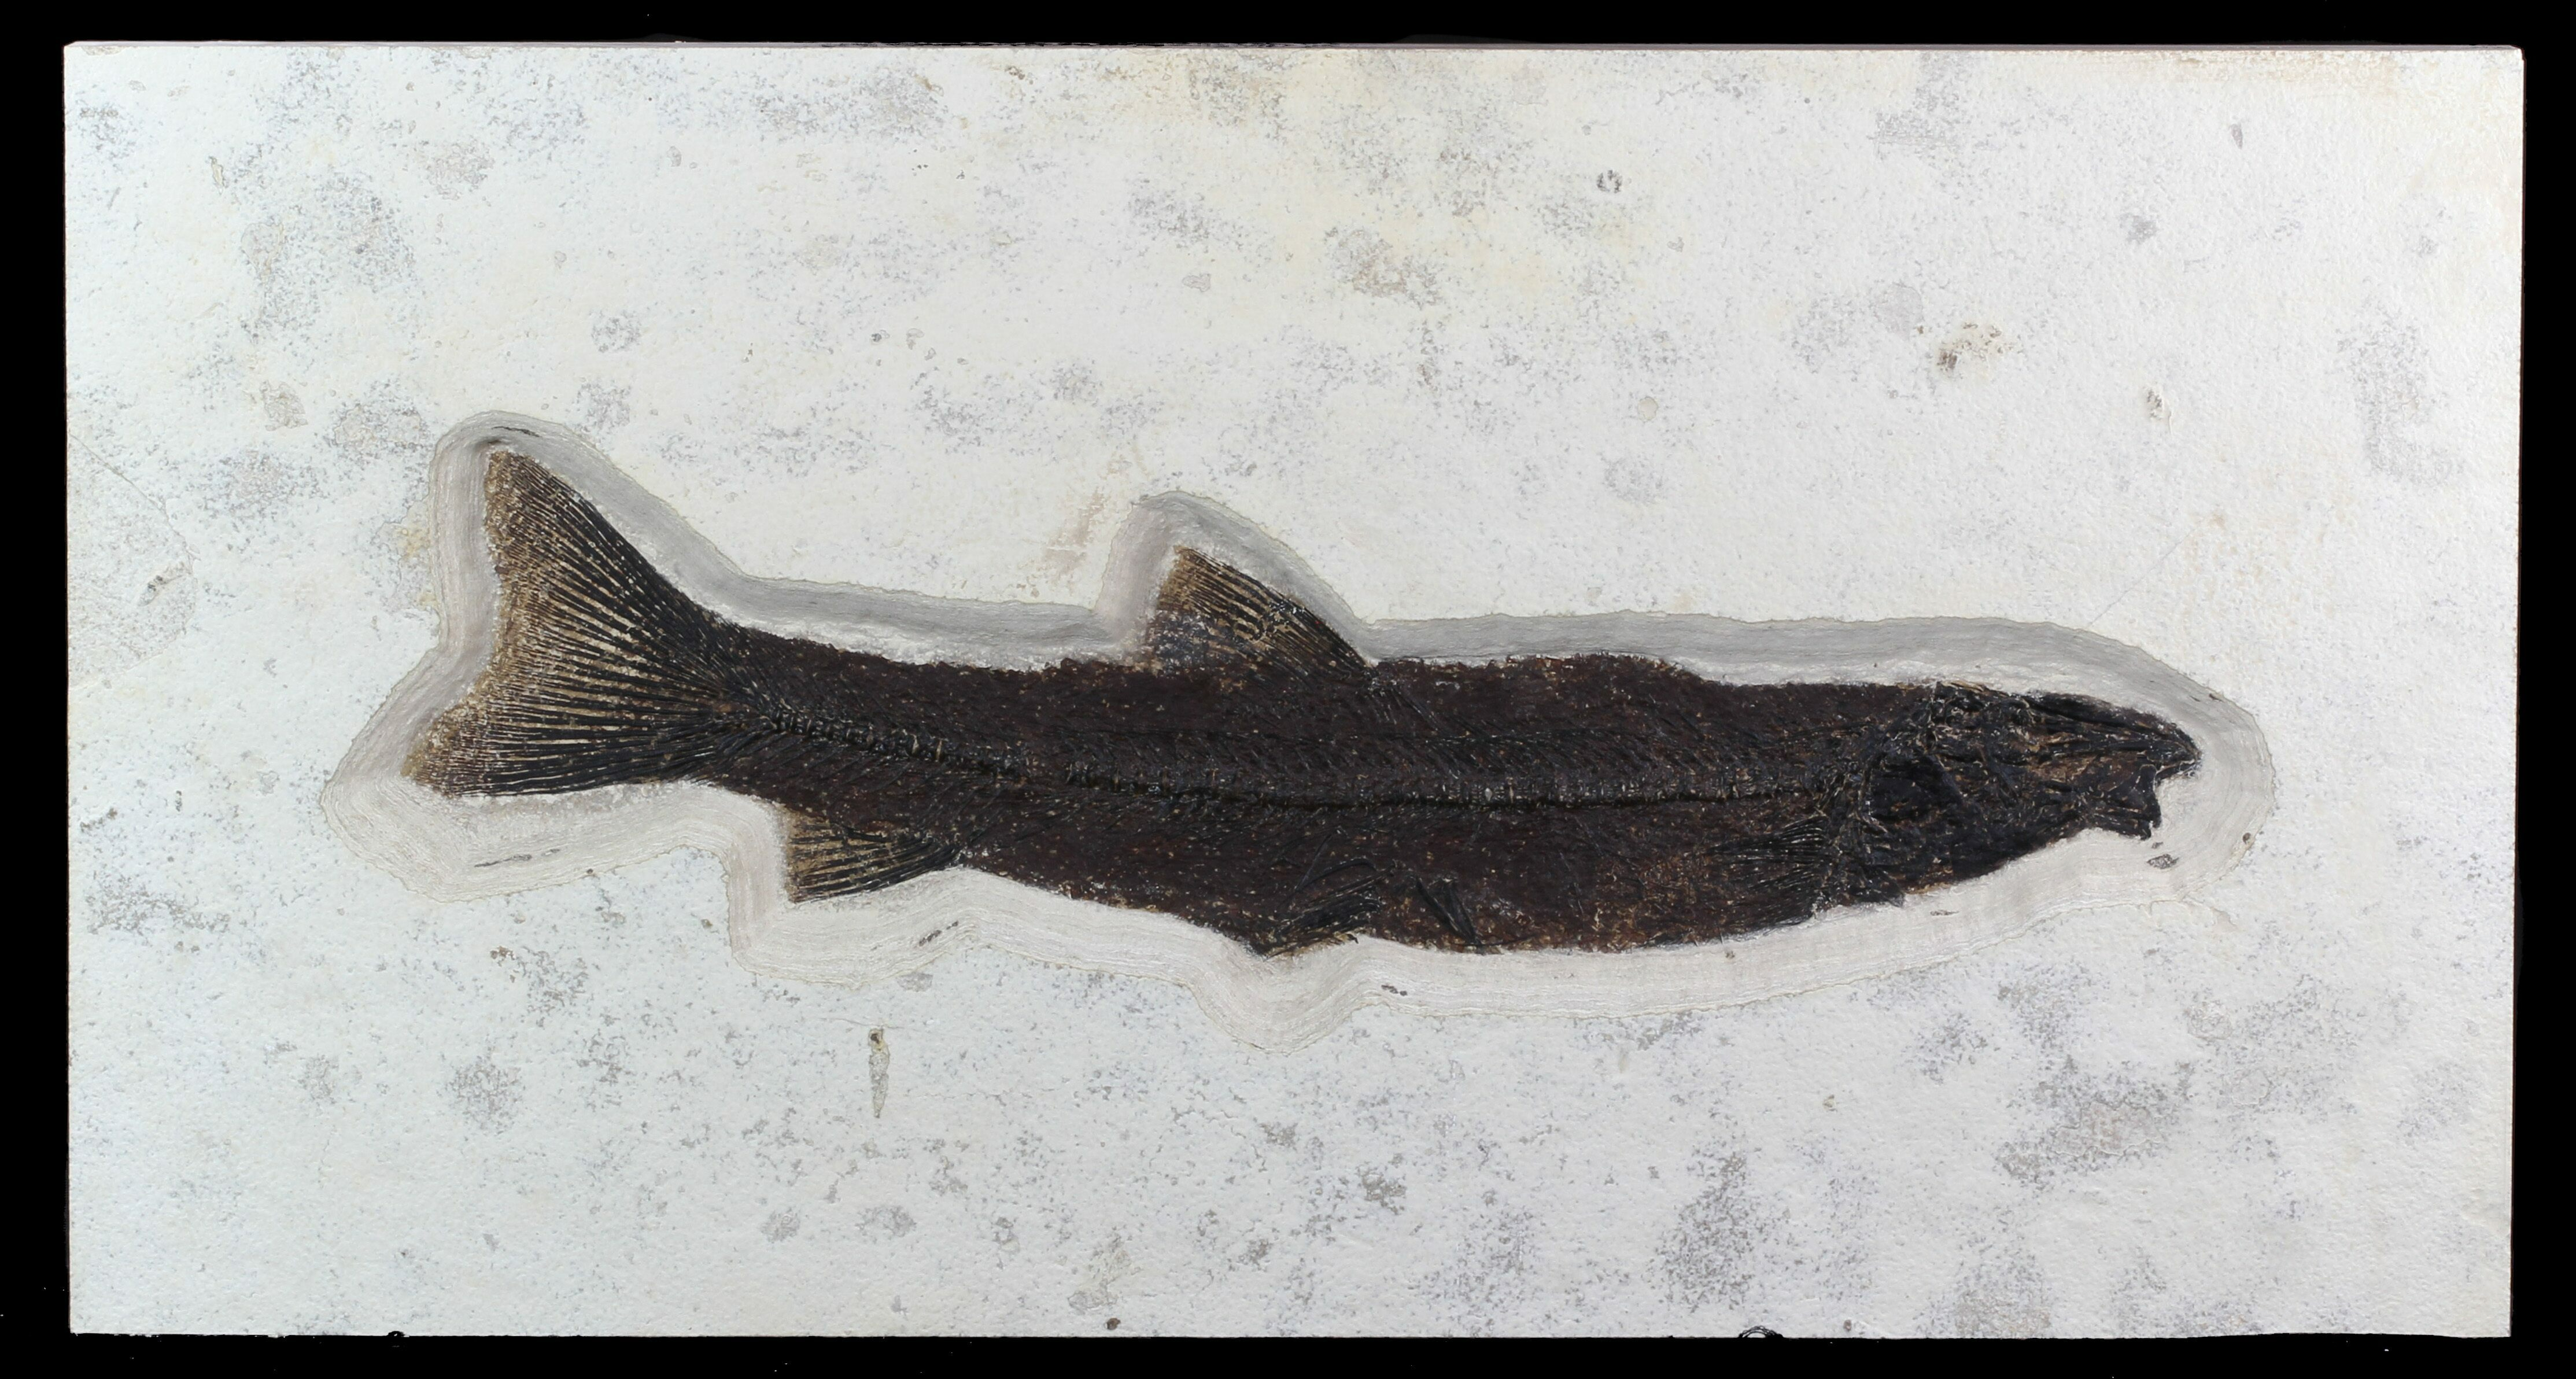 Rare 18 long notogoneus fish fossil wyoming for sale for Fish fossils for sale